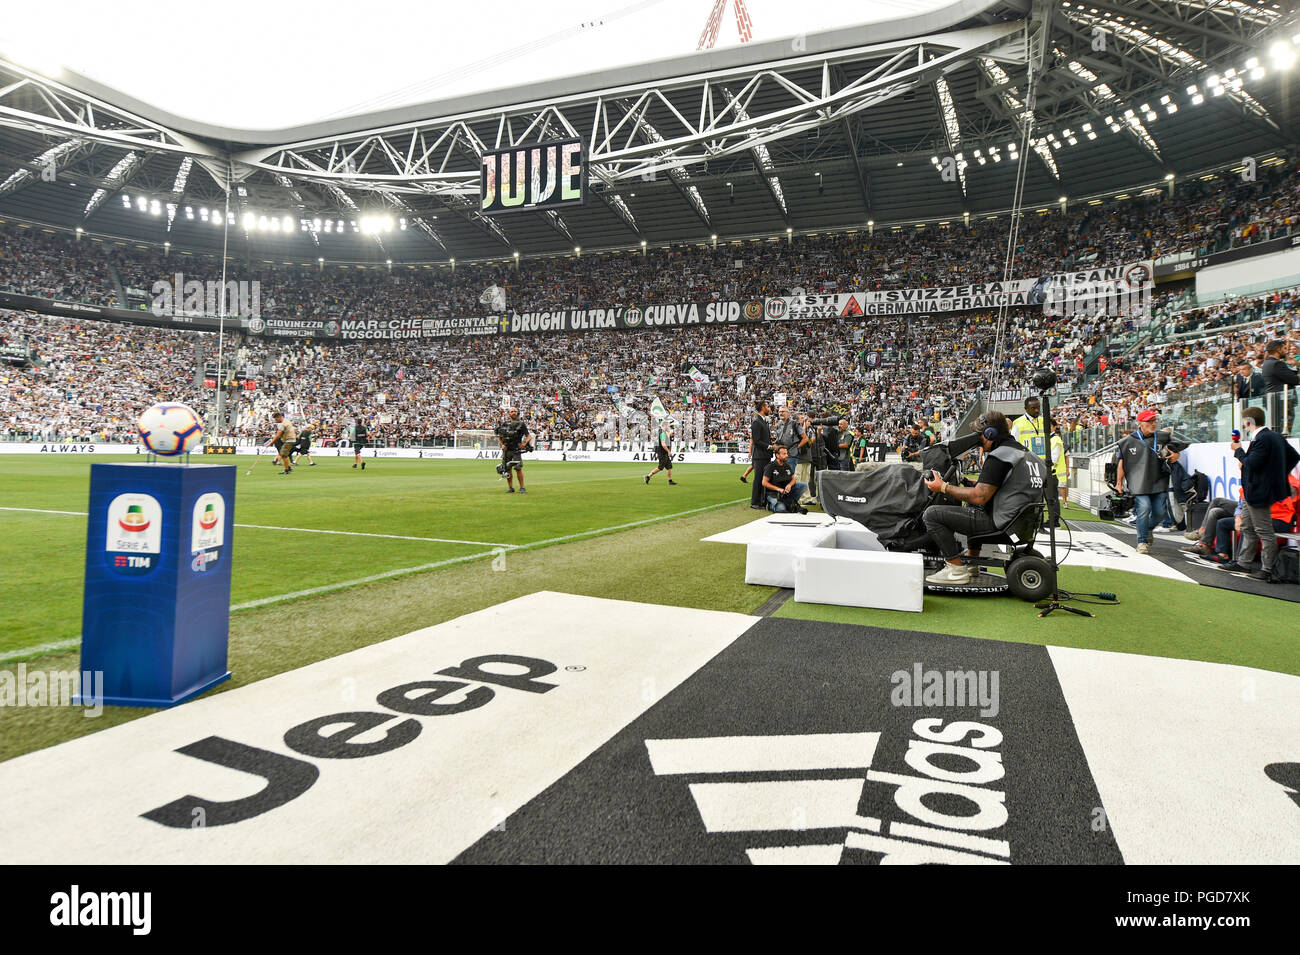 turin italy 25th aug 2018 juventus stadium during the serie a football match between juventus fc https www alamy com turin italy 25th aug 2018 juventus stadium during the serie a football match between juventus fc and ss lazio at allianz stadium on 25 august 2018 in turin italy credit antonio poliaalamy live news image216650523 html